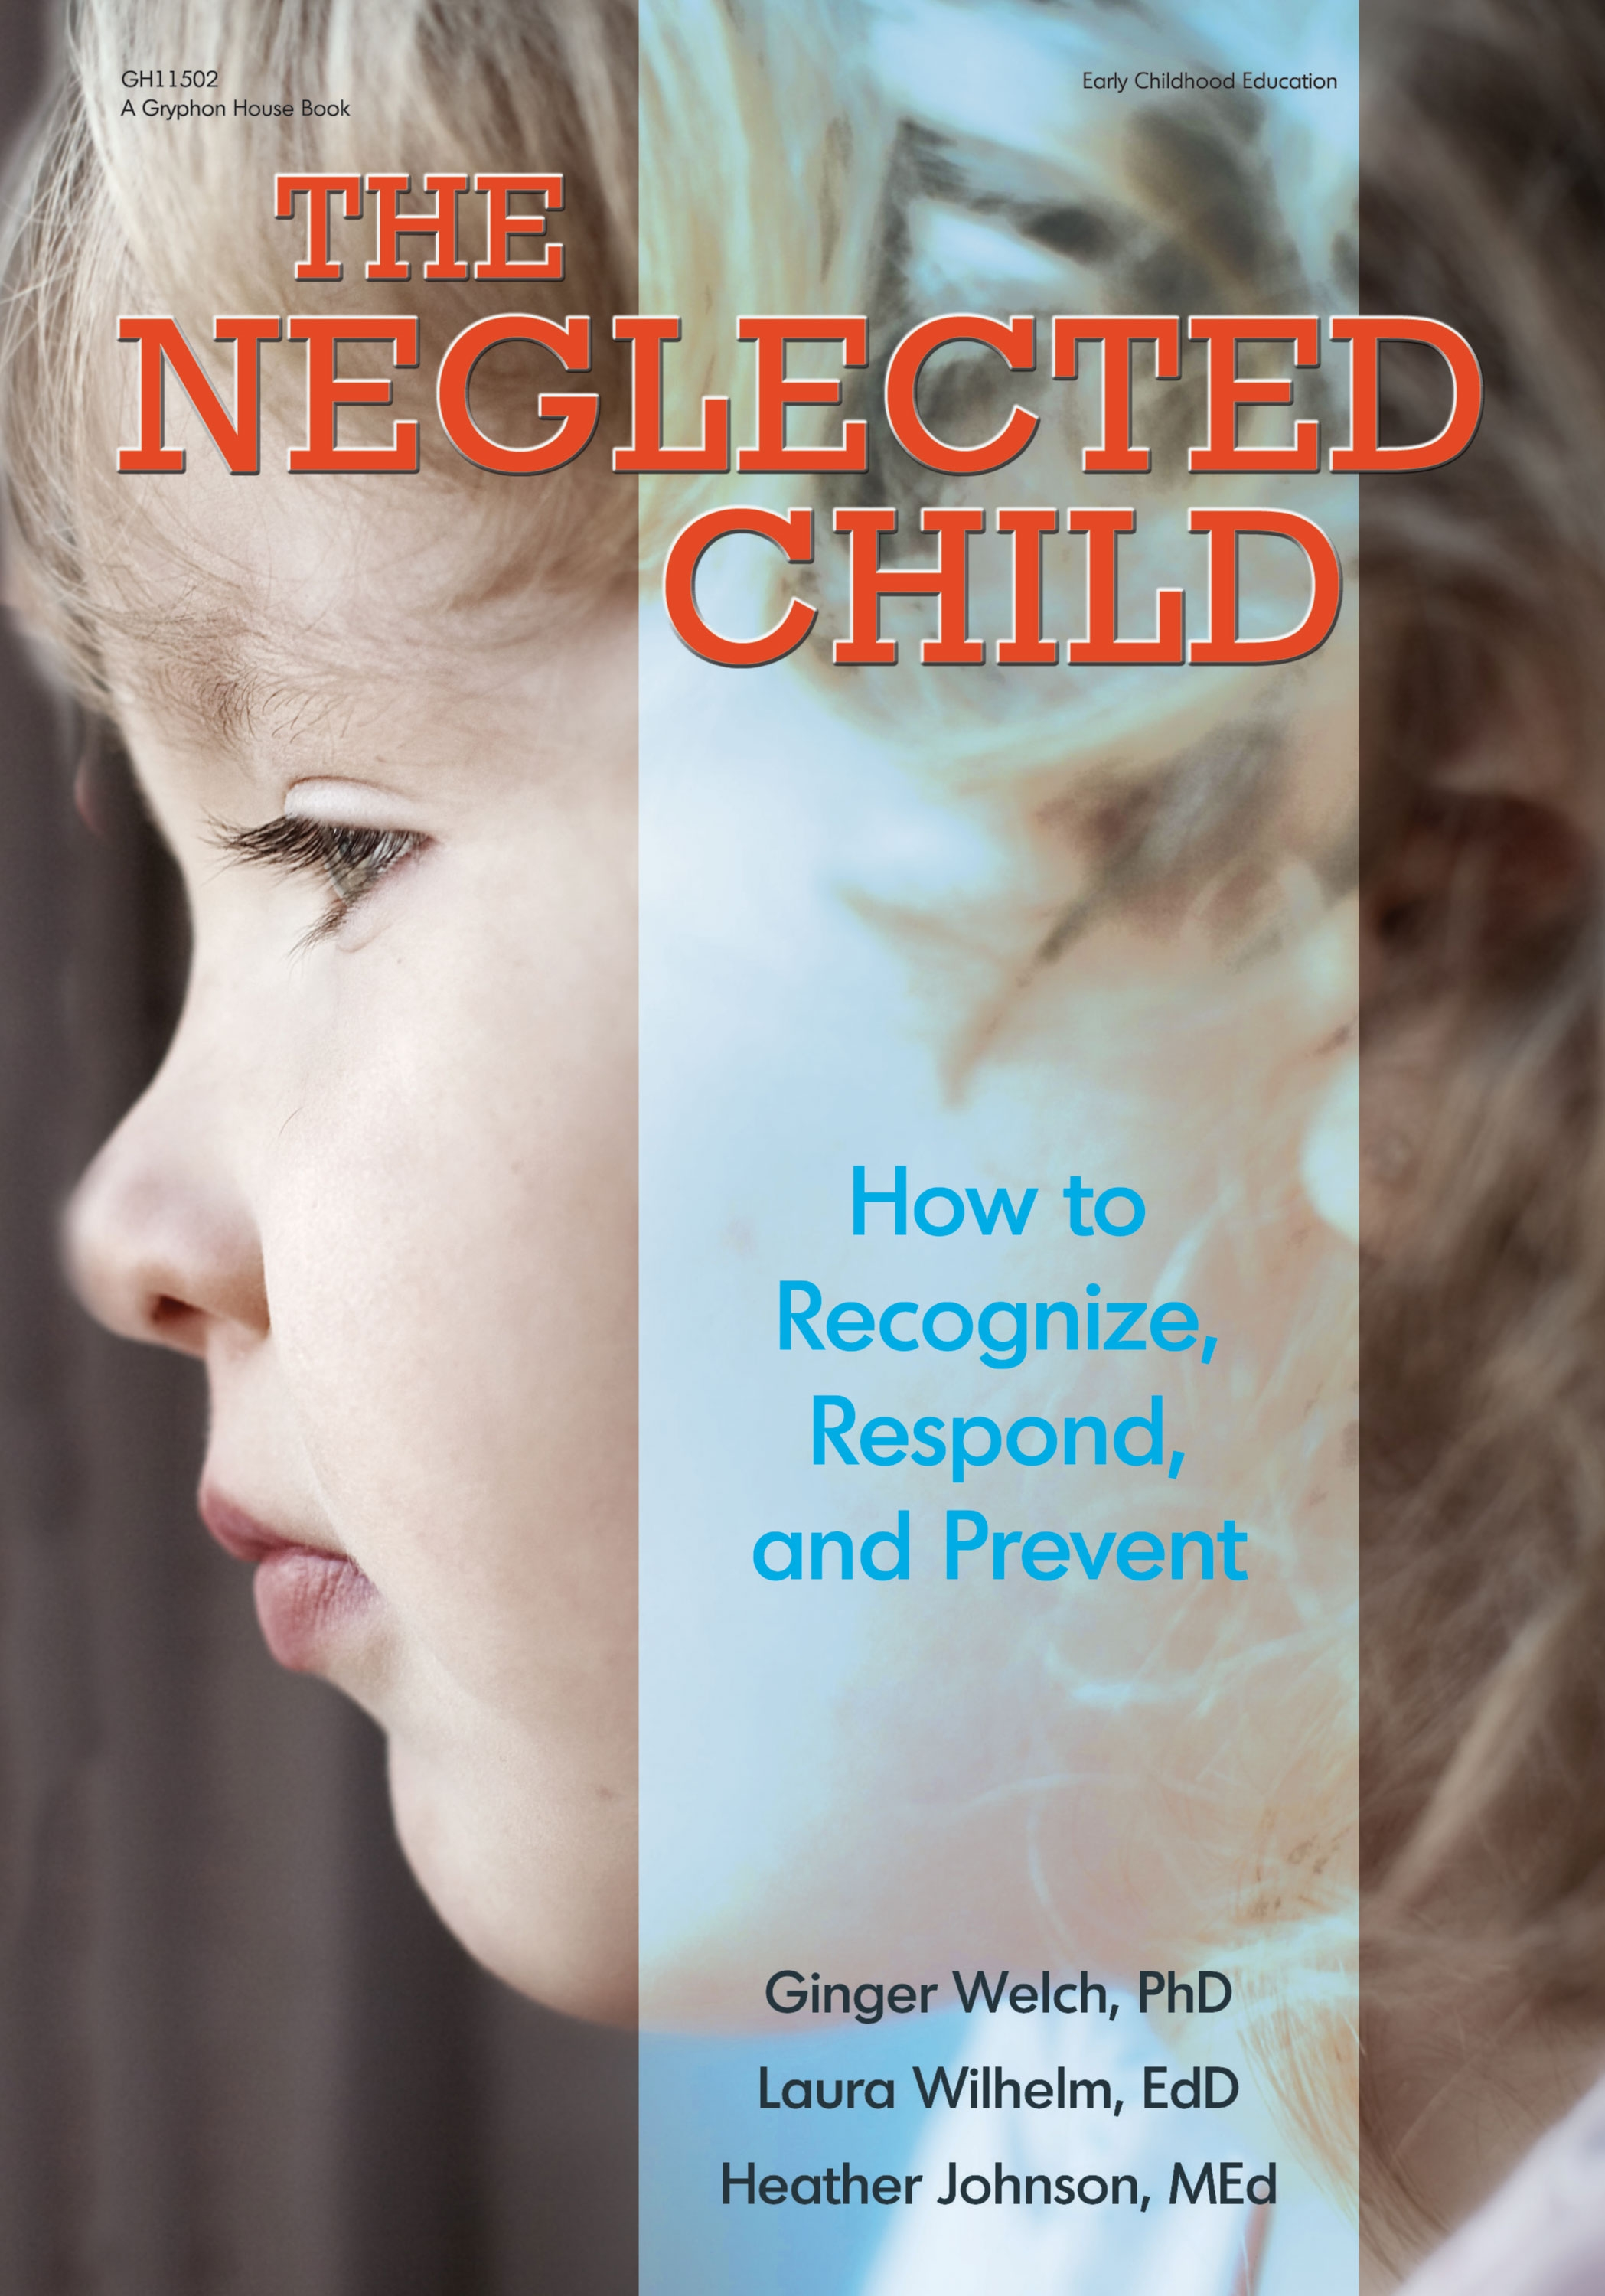 The Neglected Child: Coming September 1